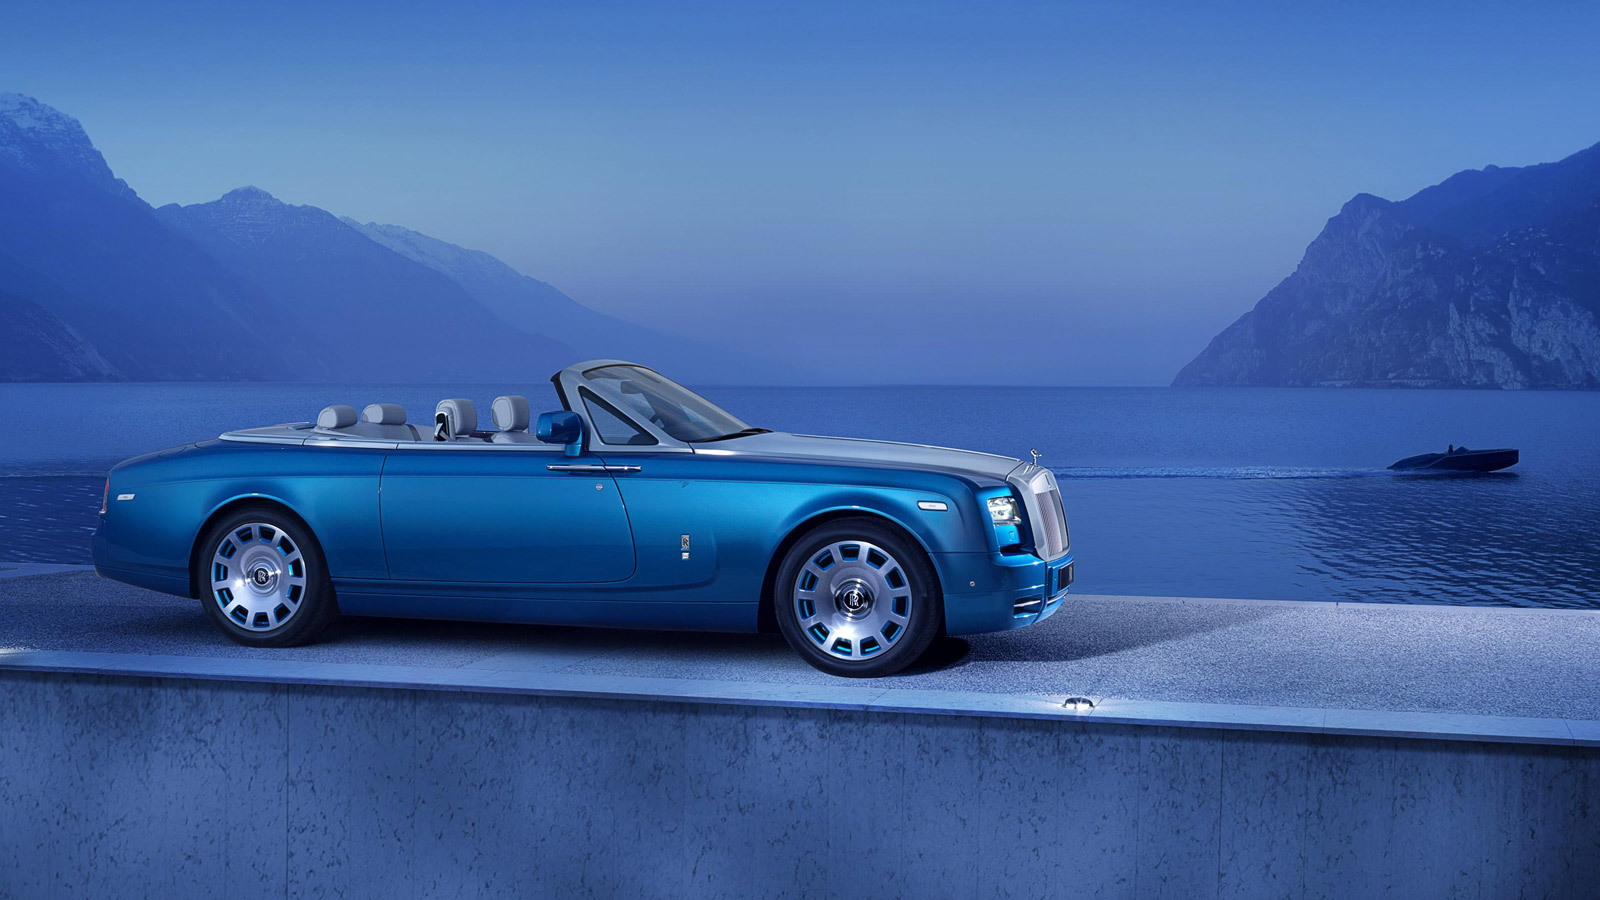 2014 Rolls-Royce Phantom Drophead Coupe Waterspeed Collection